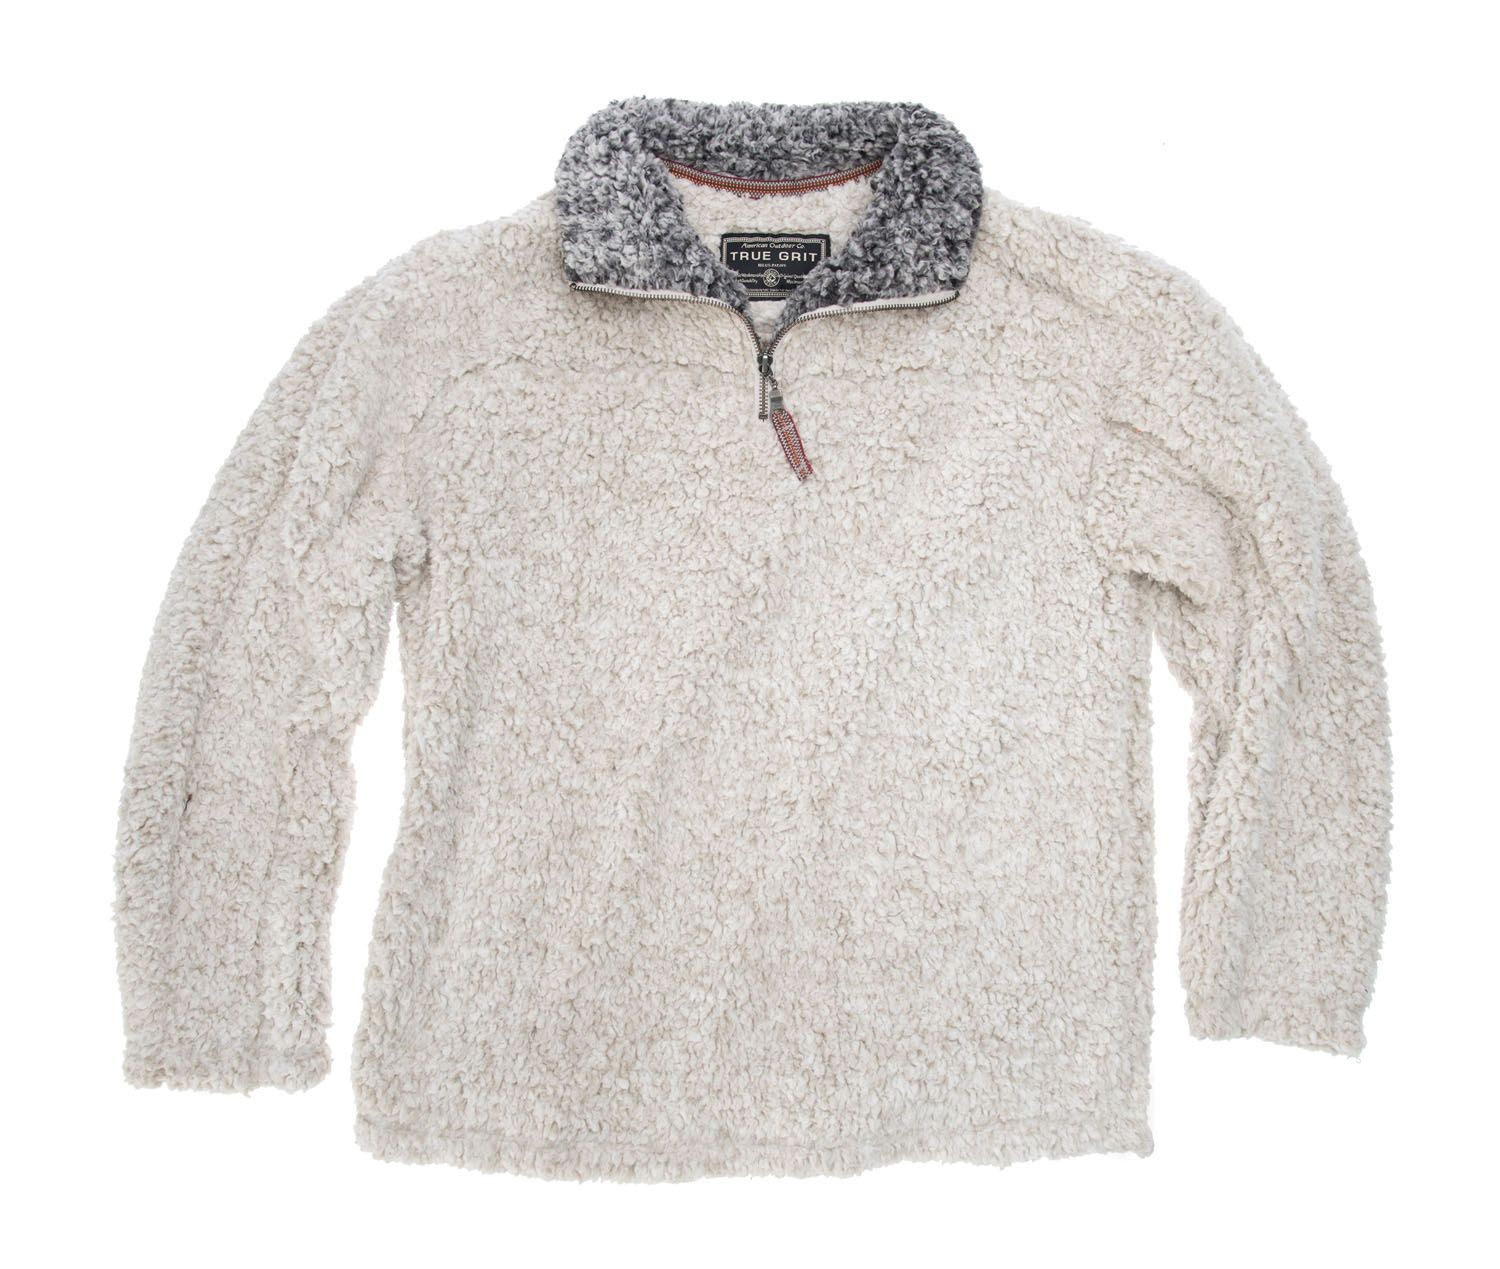 True Grit - Frosty Tipped Pile Zip Pullover :: Sweaters ...